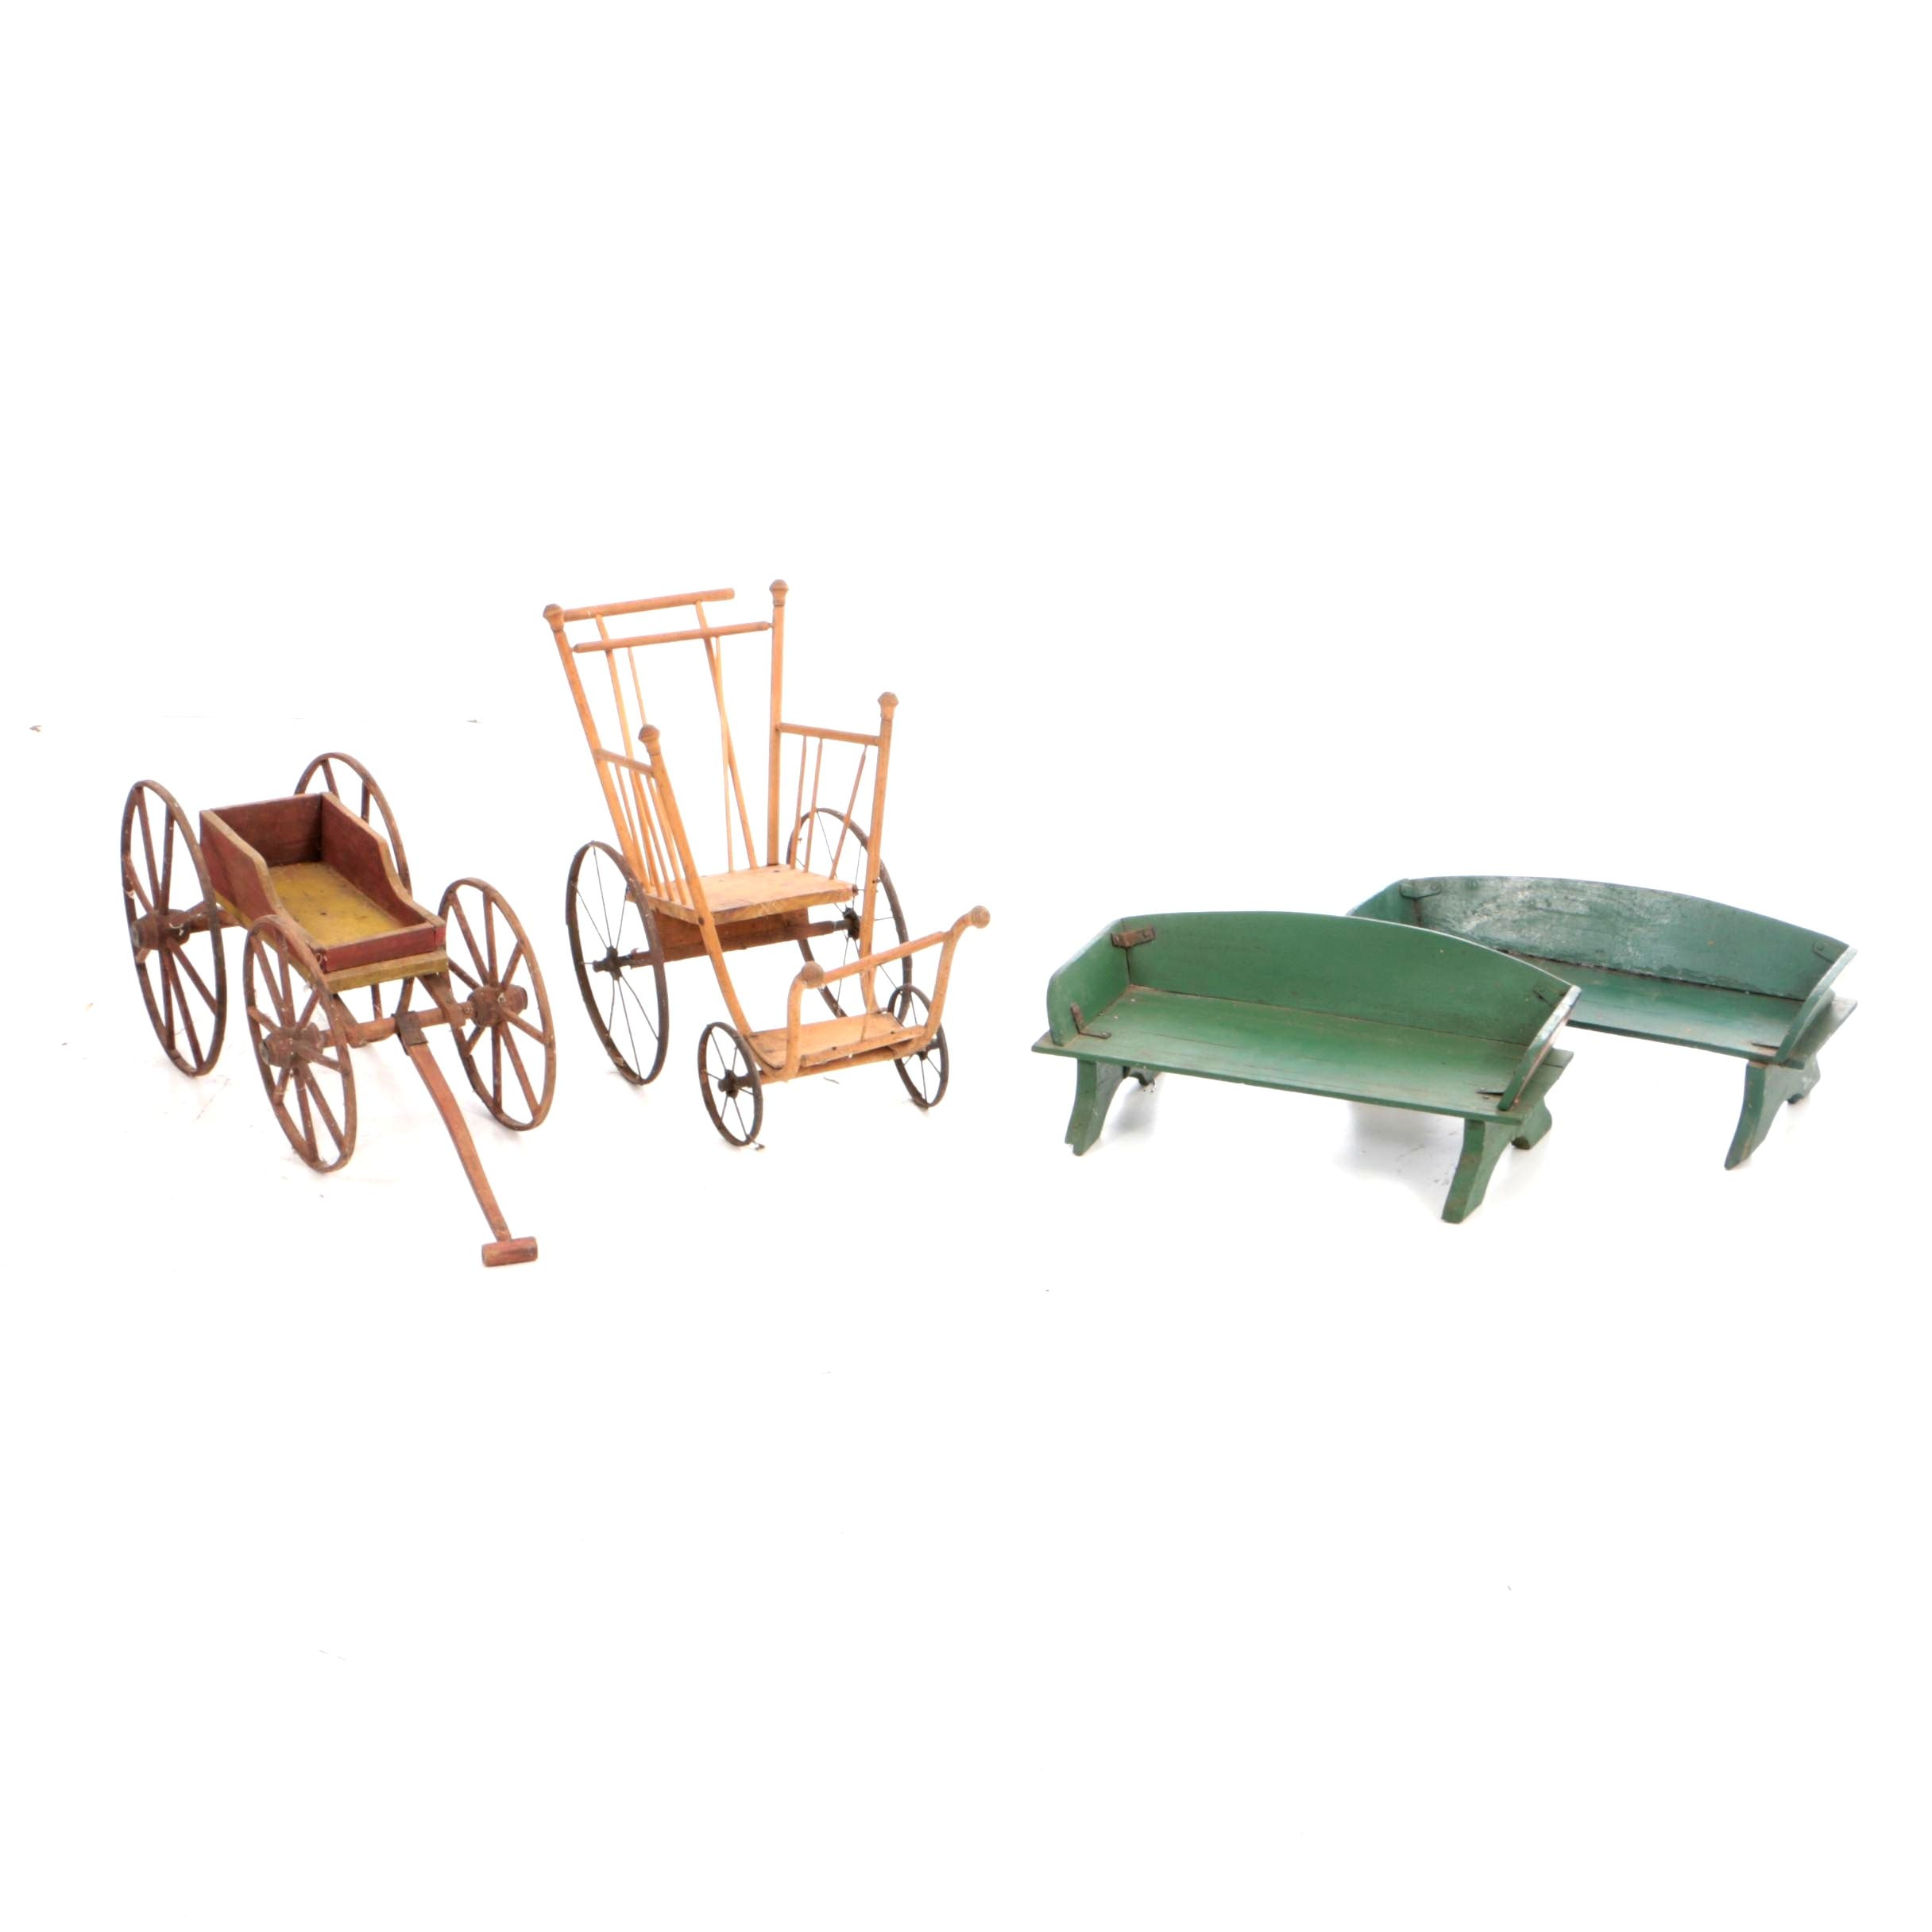 Antique Doll's Wagon and Stroller with Vintage Wagon Seats